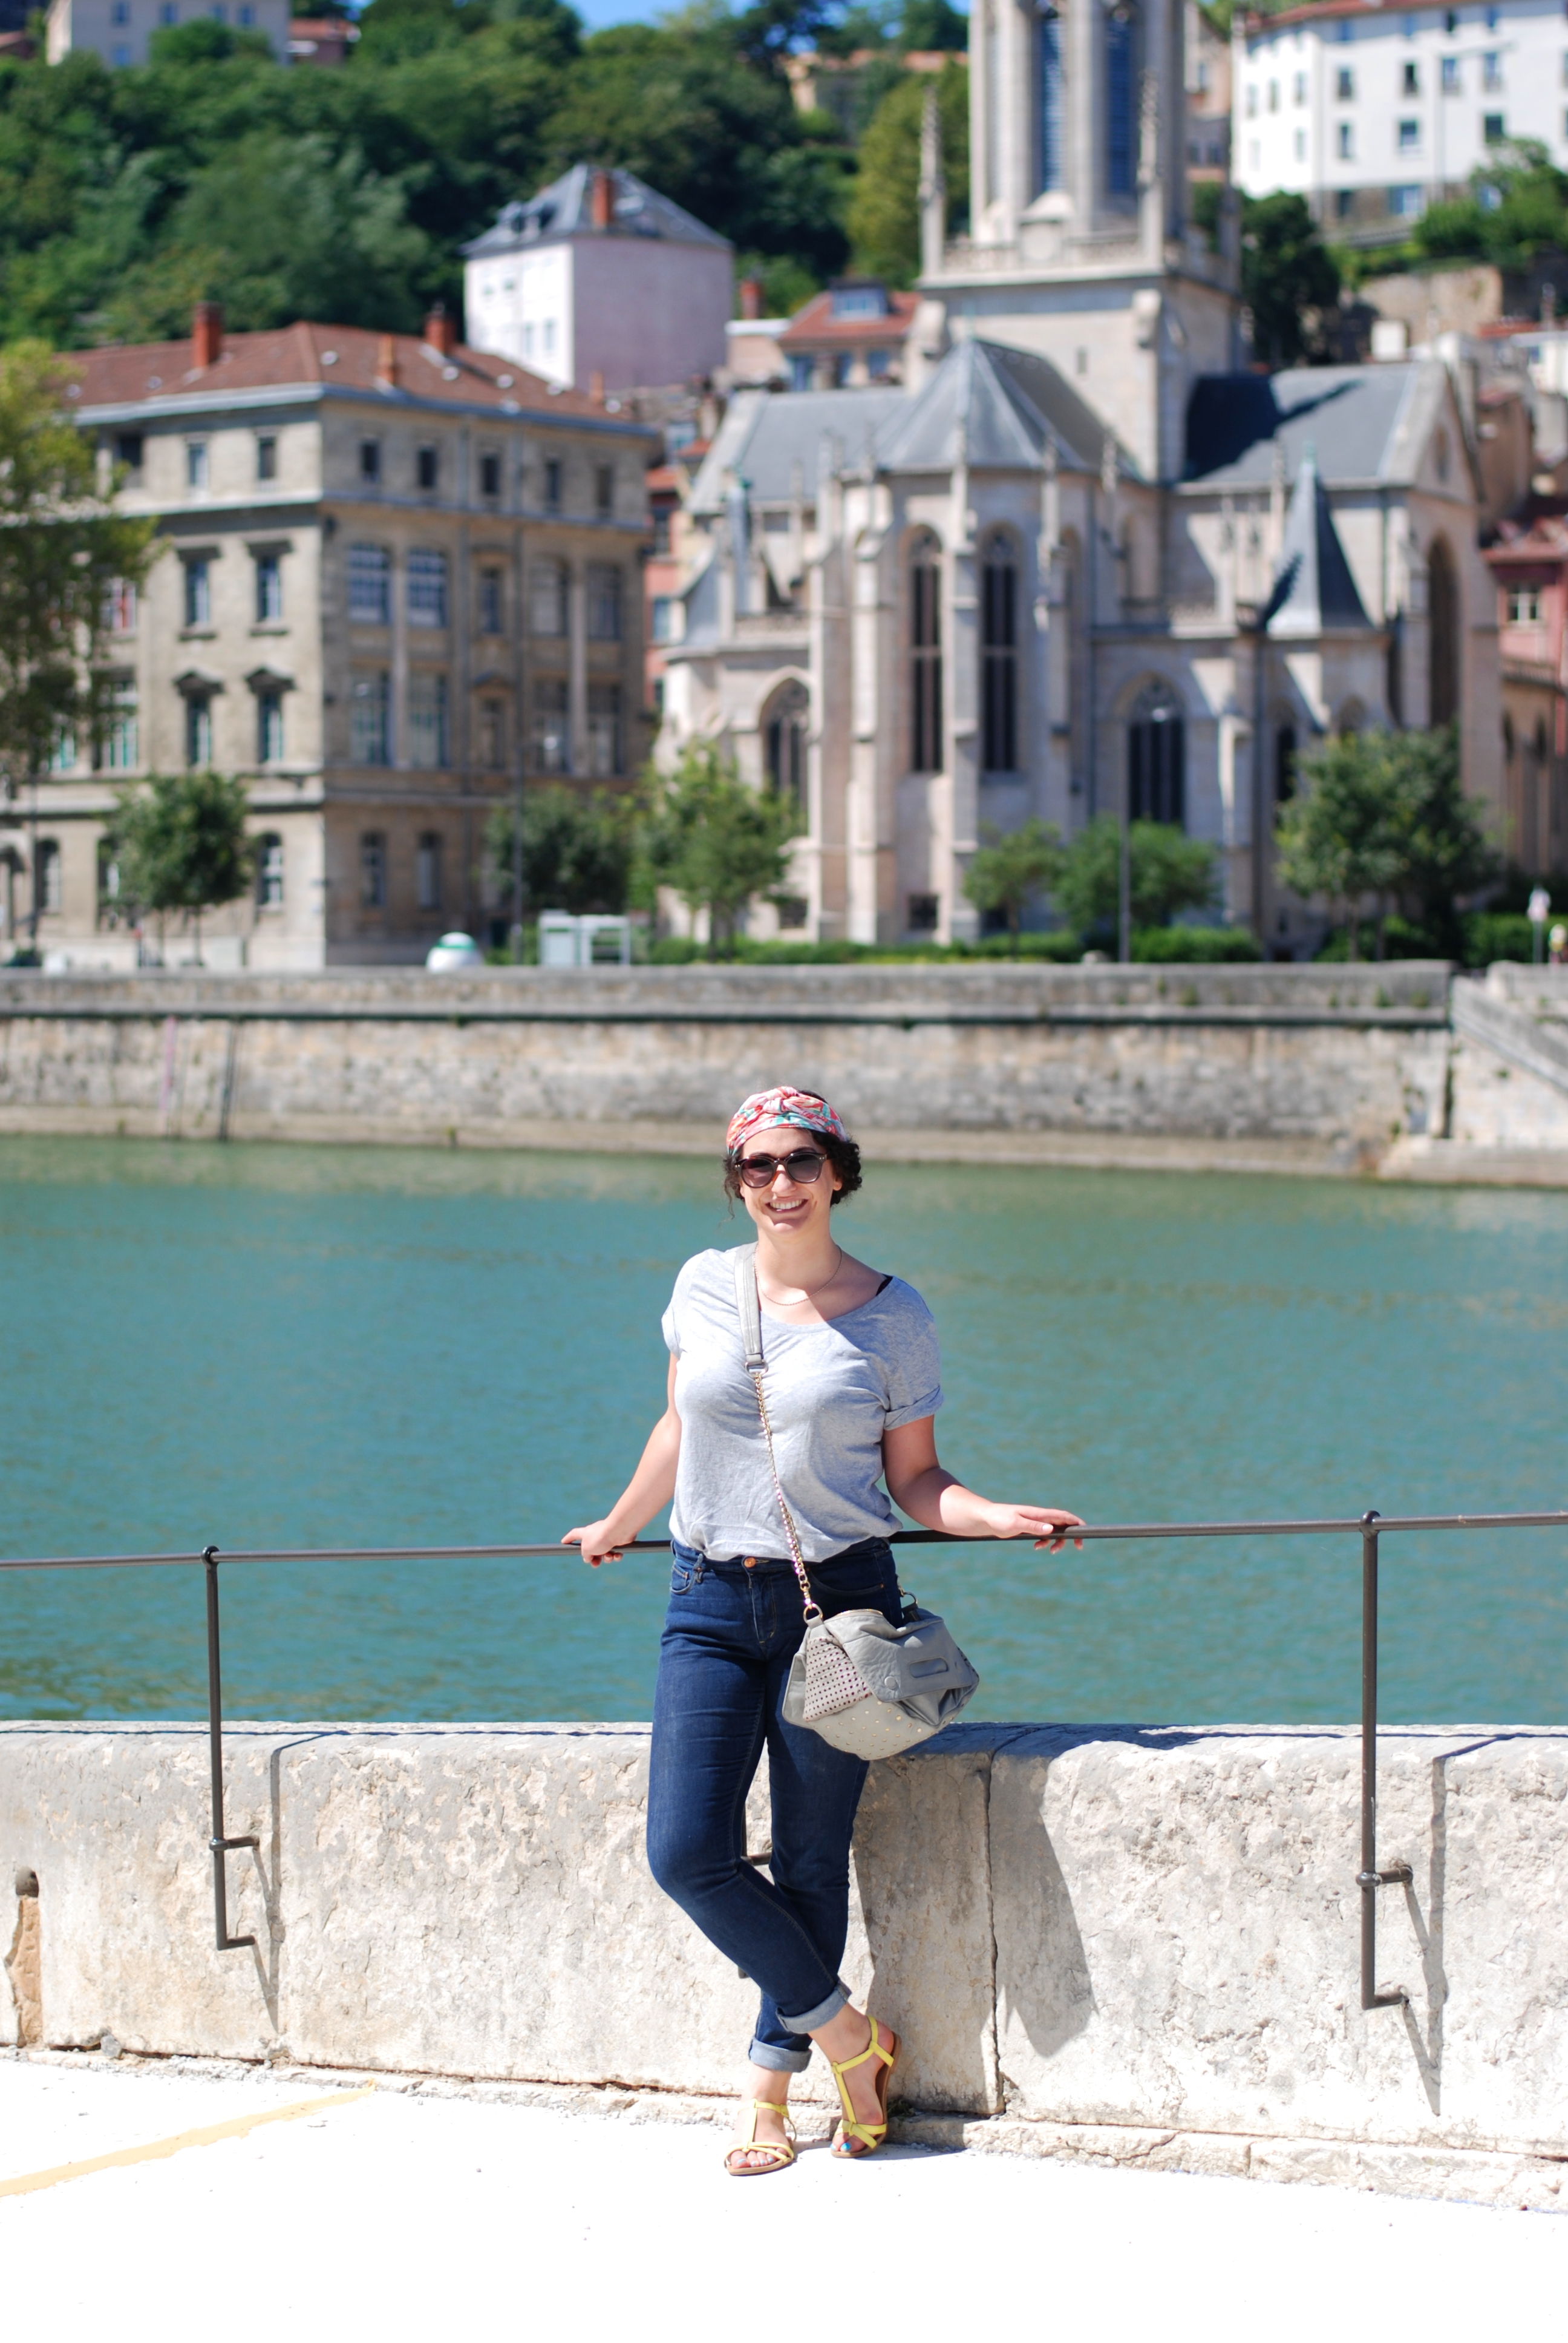 chambray and curls Lyon France Summer Travel Girl casual outfit by riverside